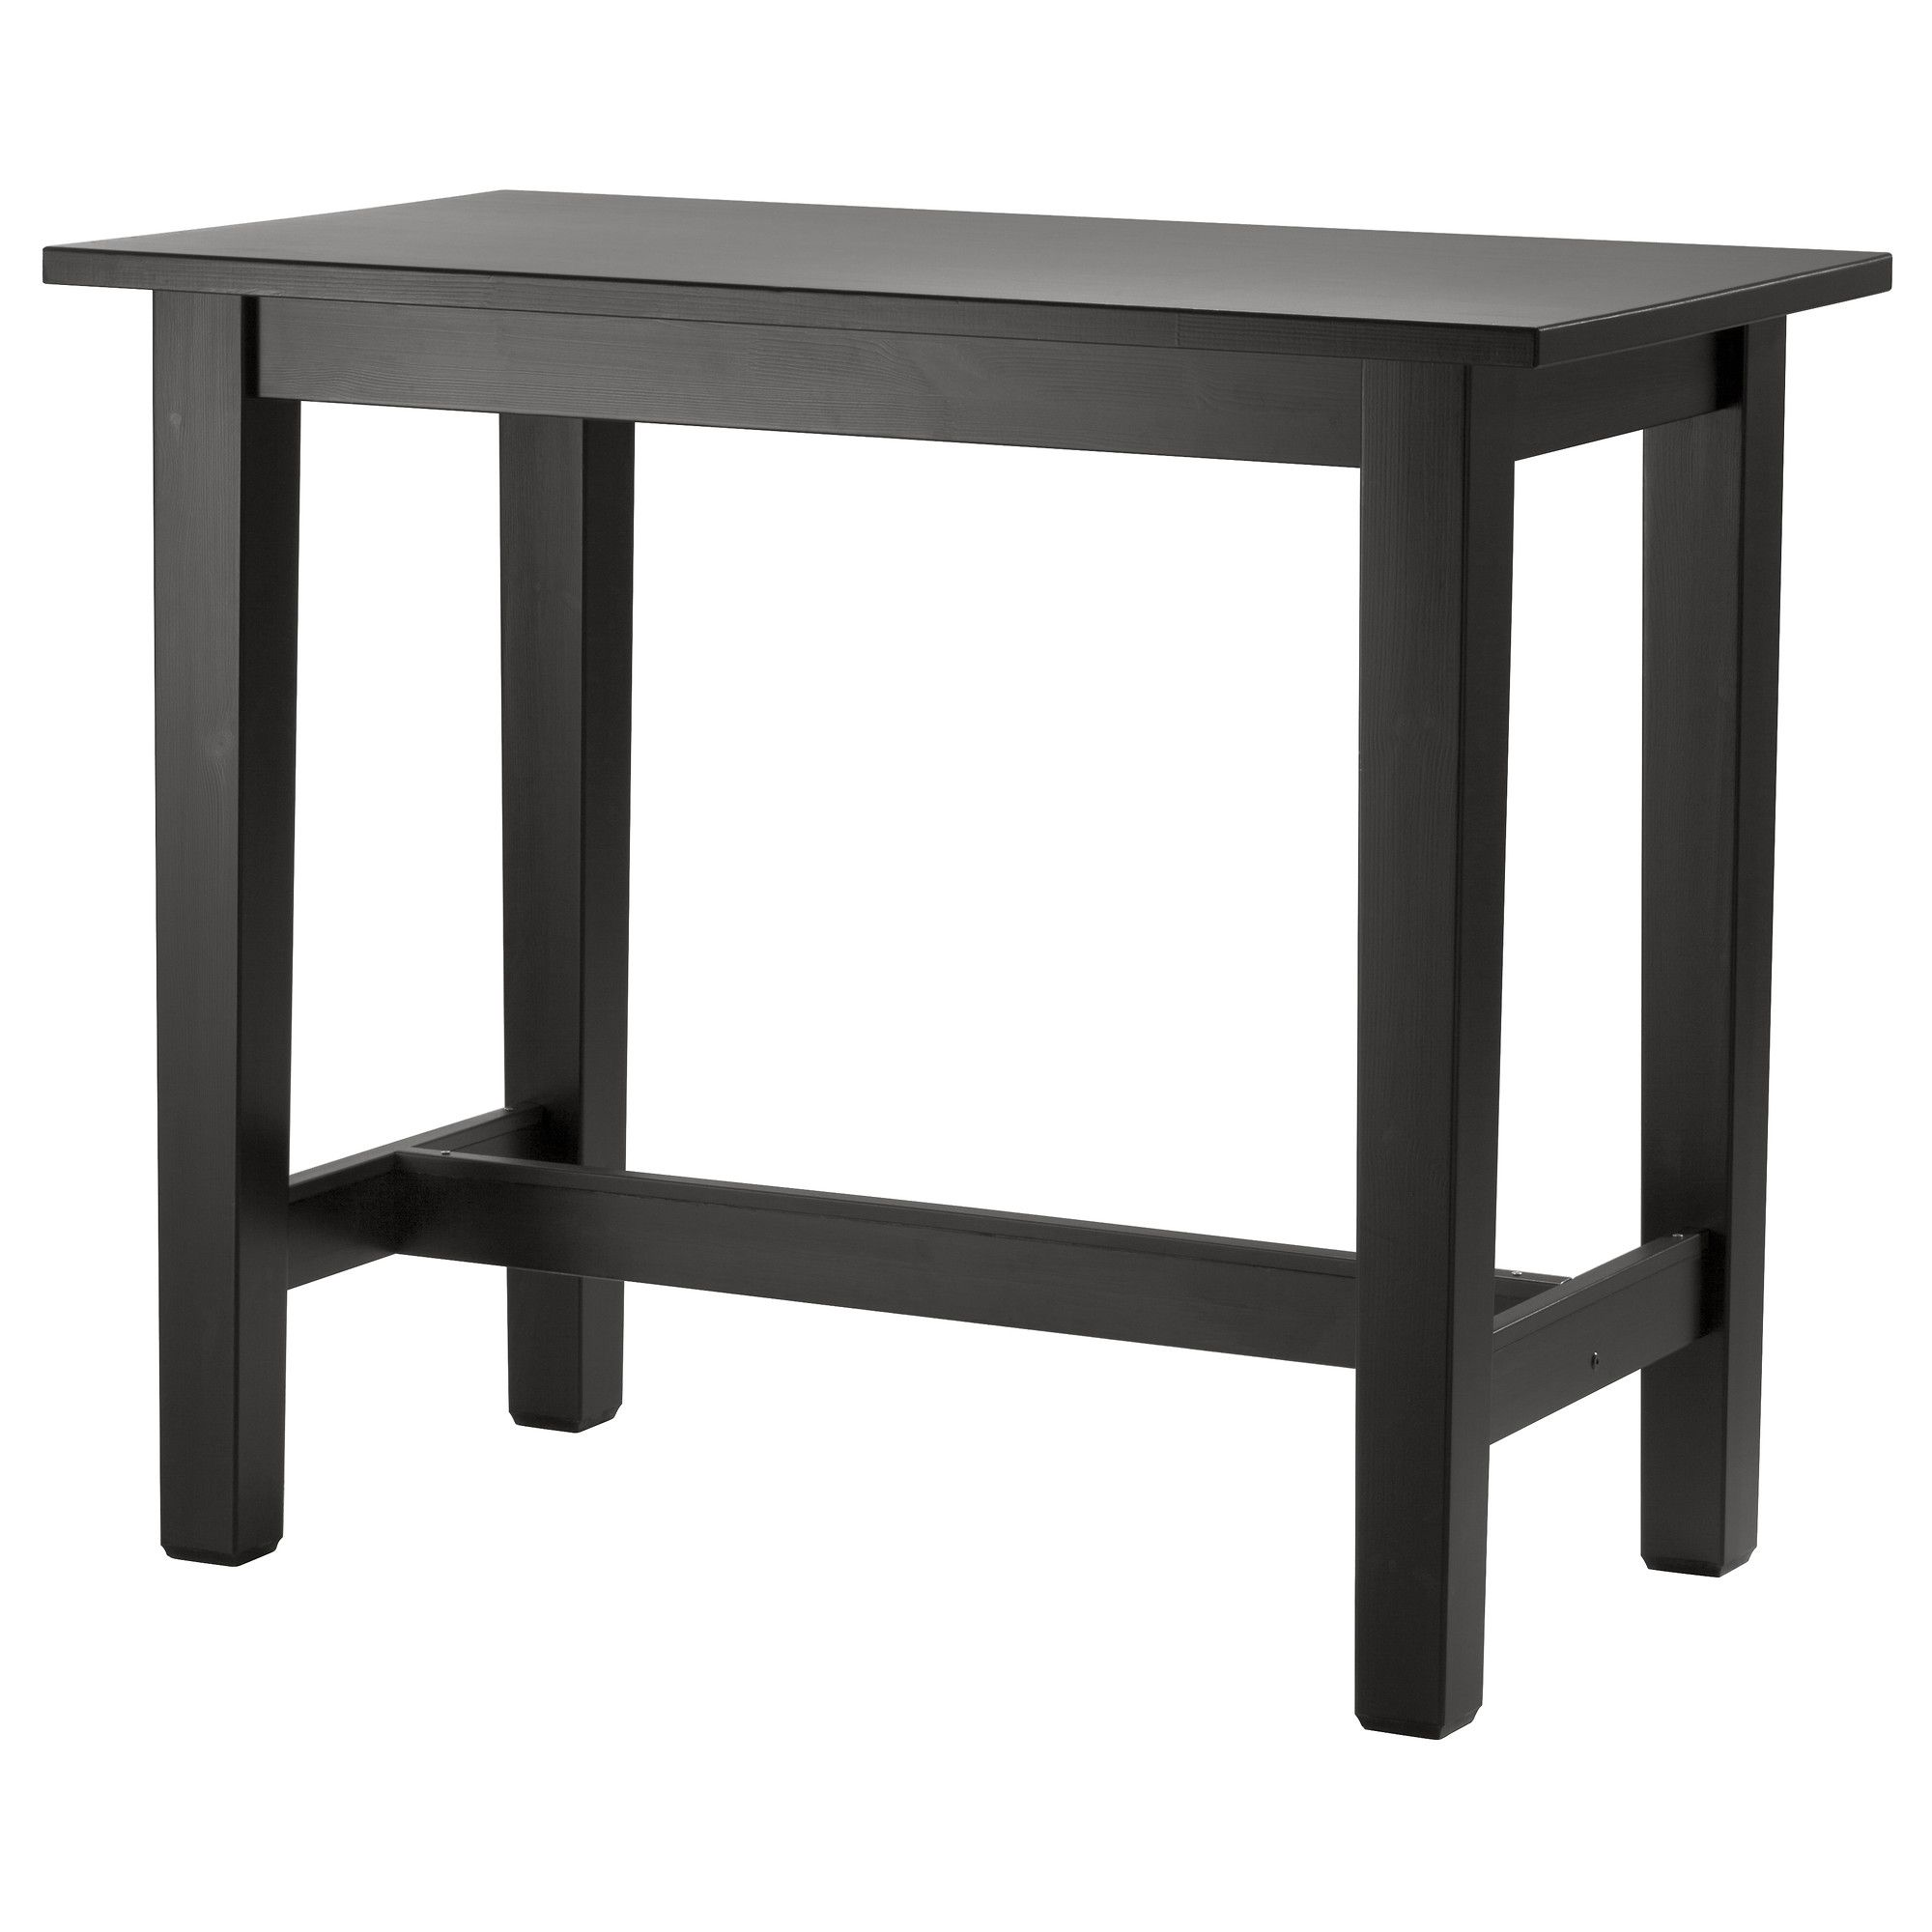 STORNÄS Bar table, brown-black | Blackboard paint, High top tables ...